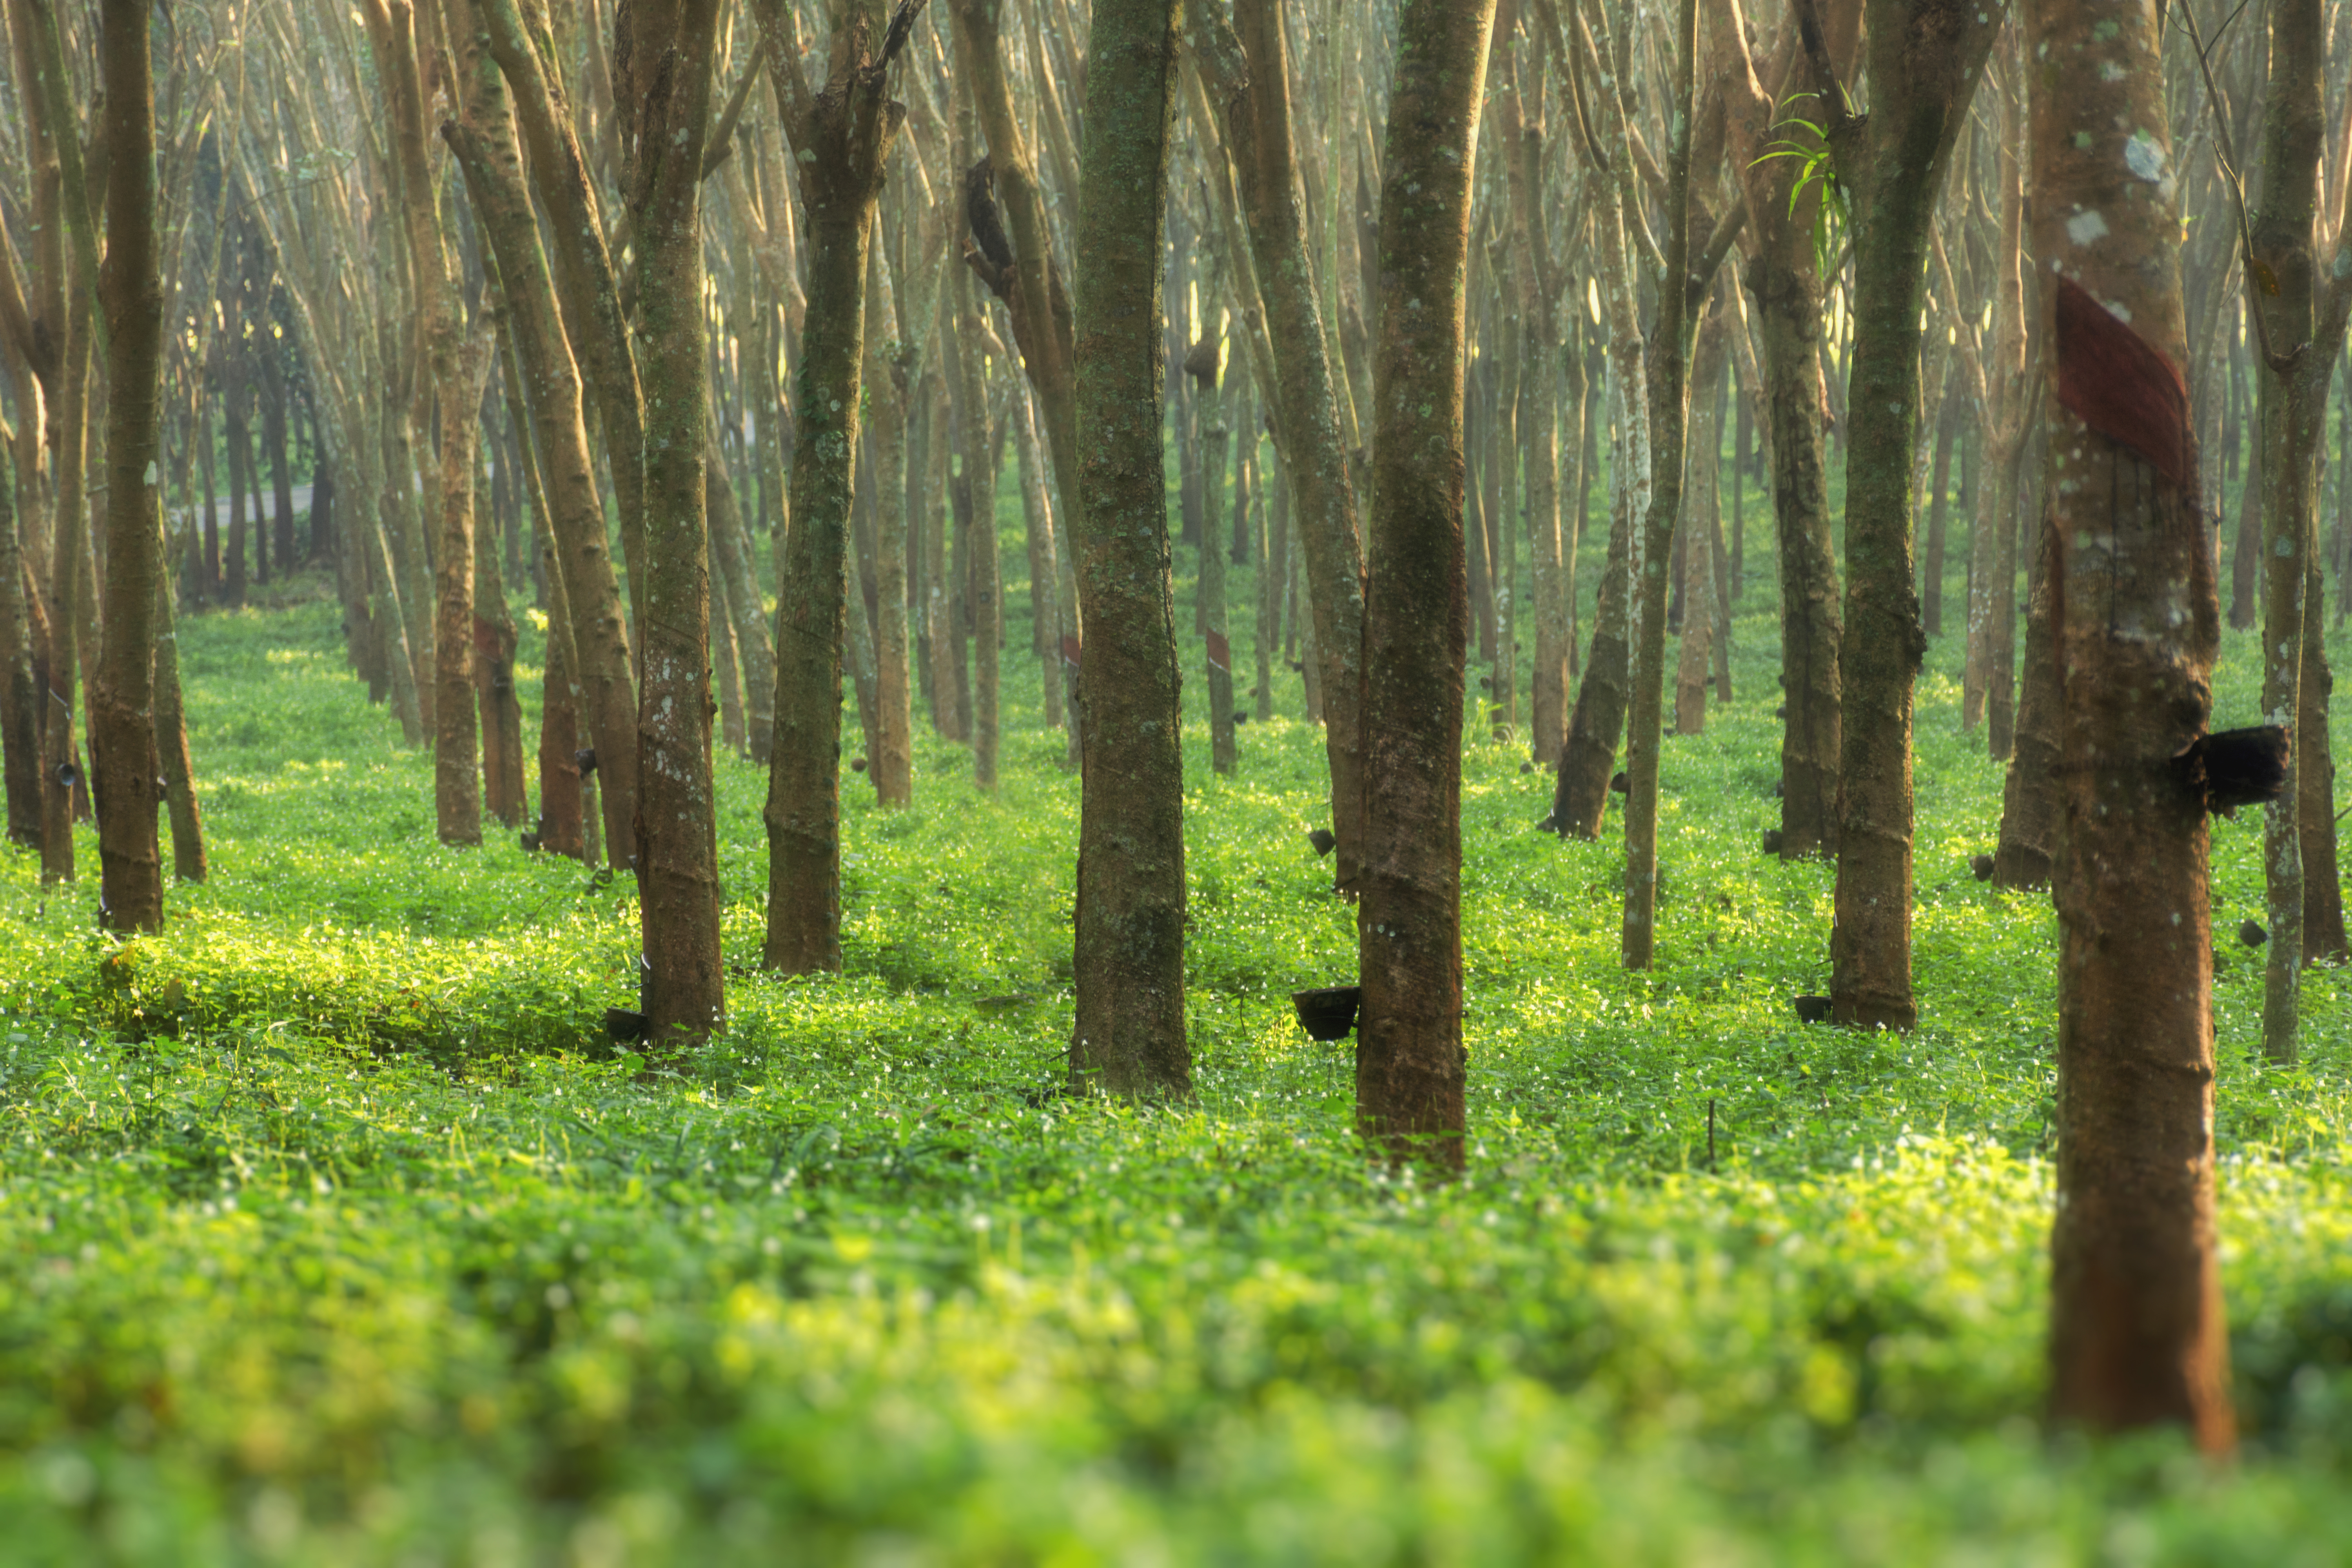 Morning at the rubber tree green forest at Suratthani, Thaialand.